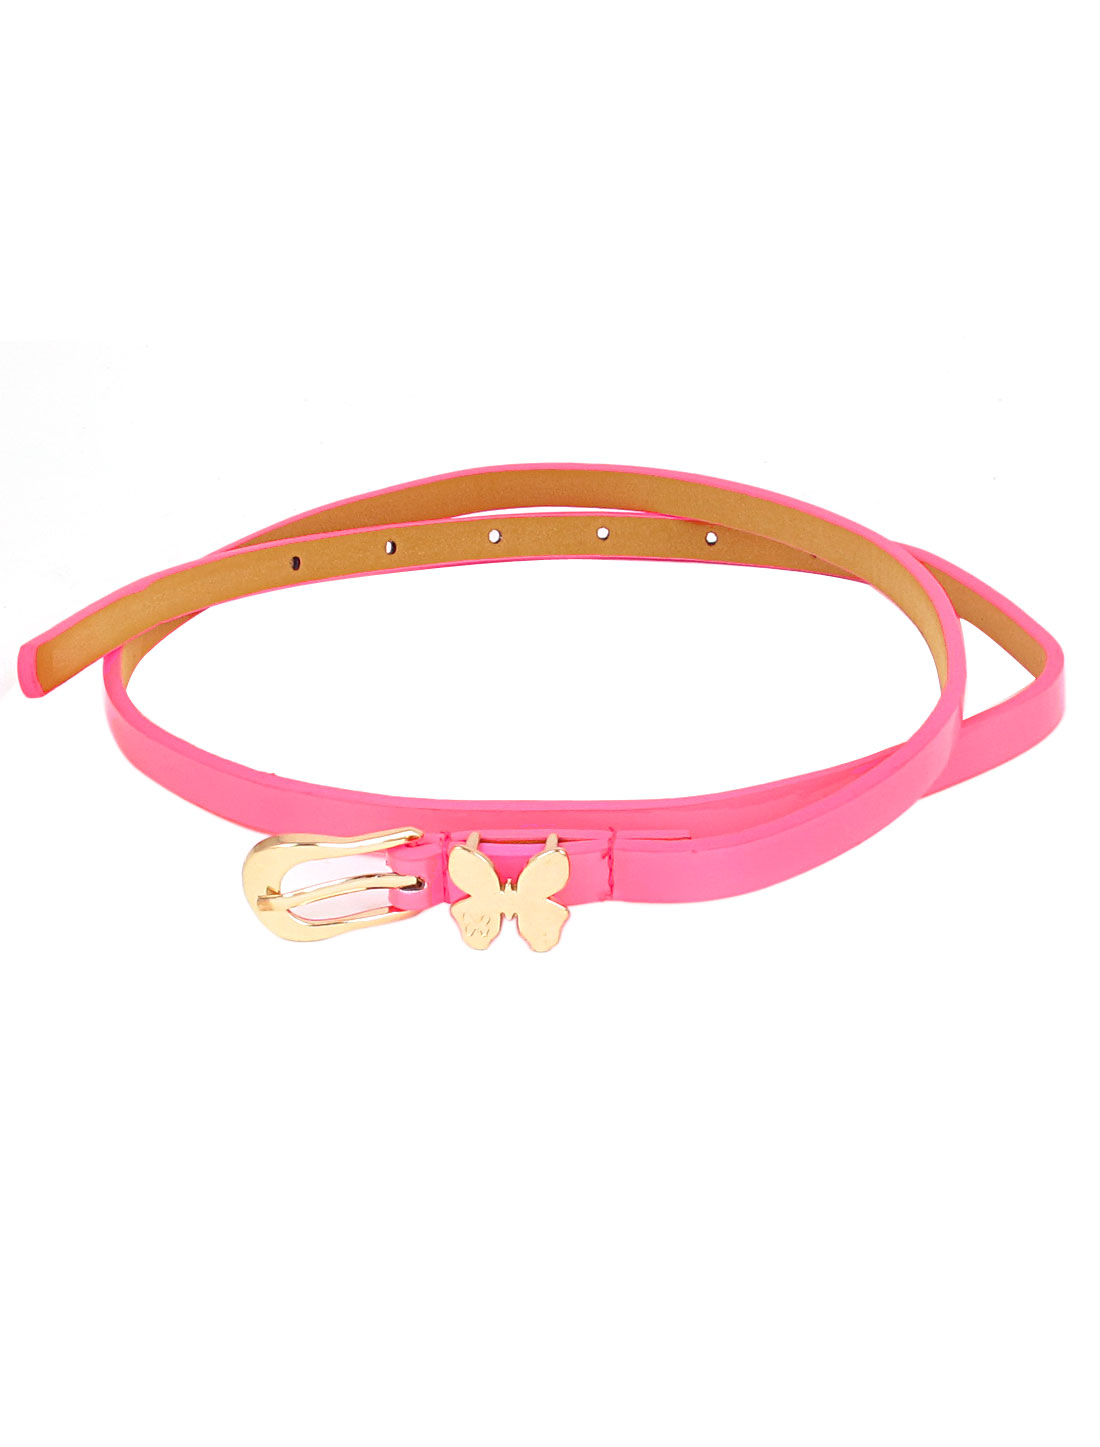 Women Butterfly Decor Metal Single Pin Buckle Perforated Adjustable Faux Leather Waist Belt Waistbelt Hot Pink